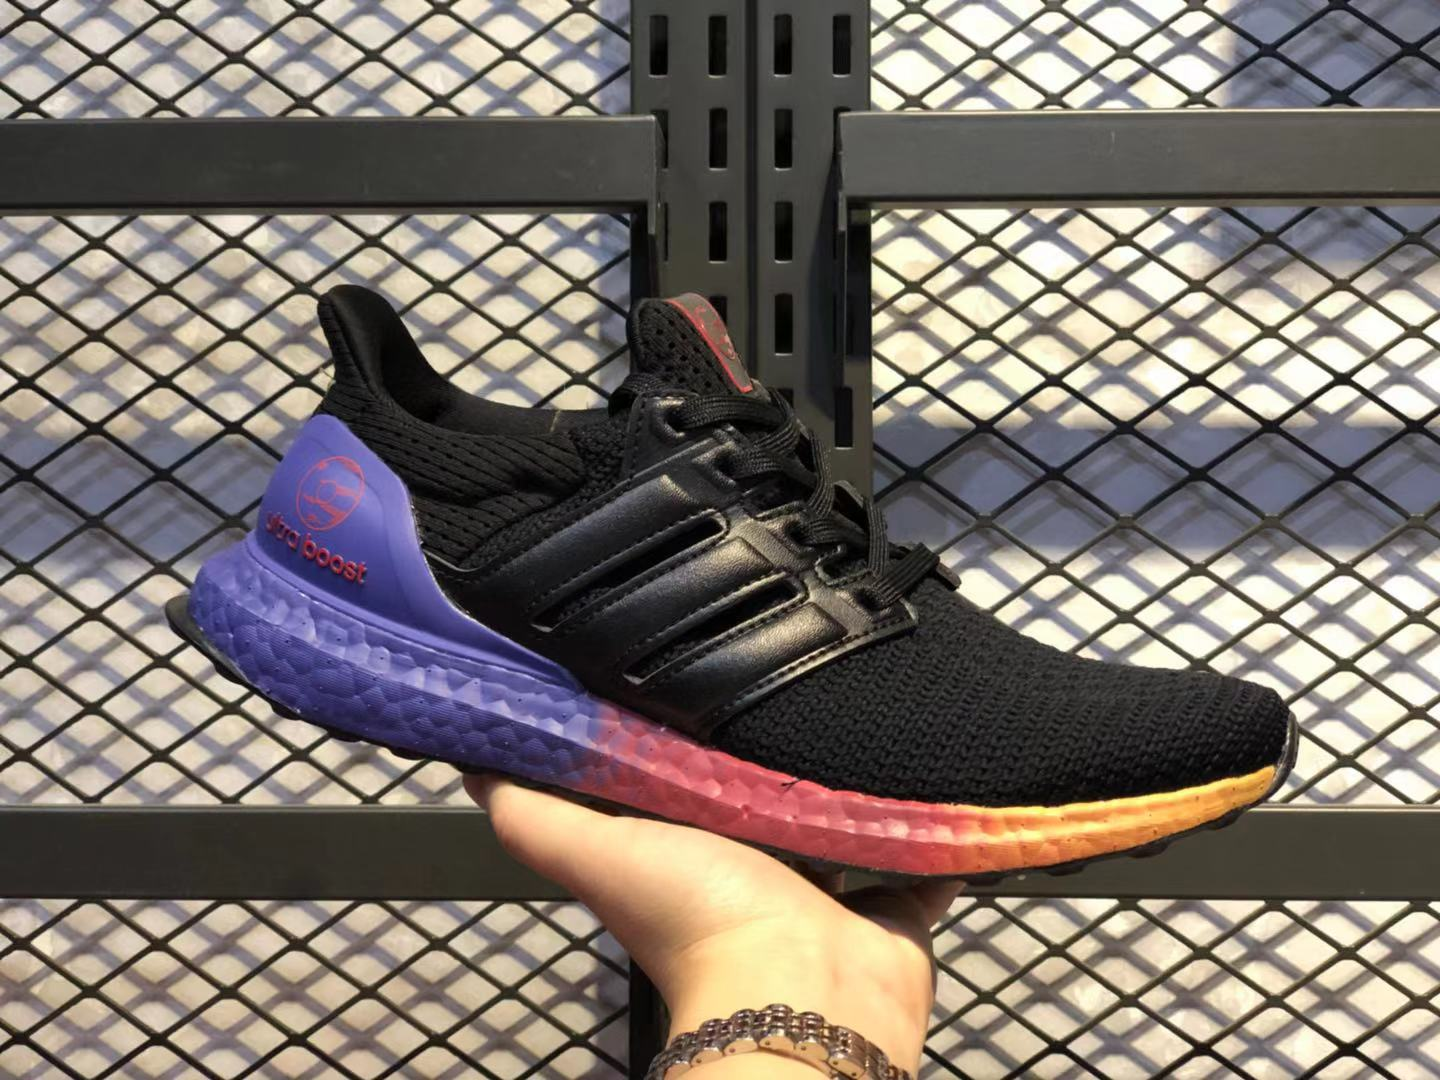 Adidas Ultra Boost Black/Multi-Color New Style Sneakers On Sale FW3725